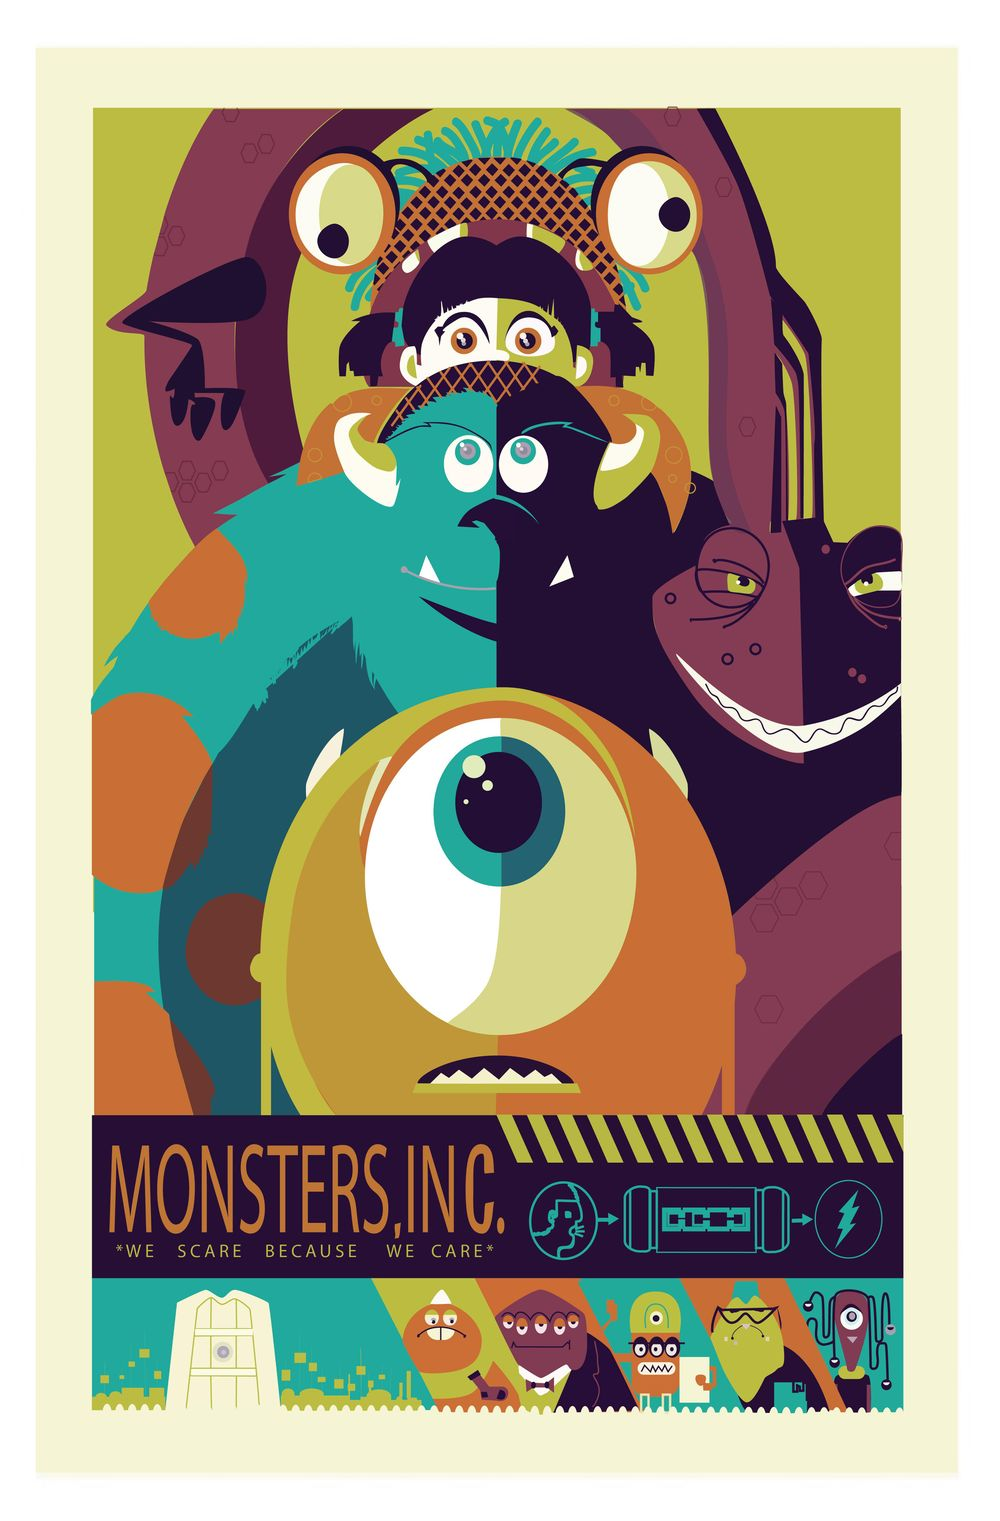 Monsters Inc - image 3 - student project